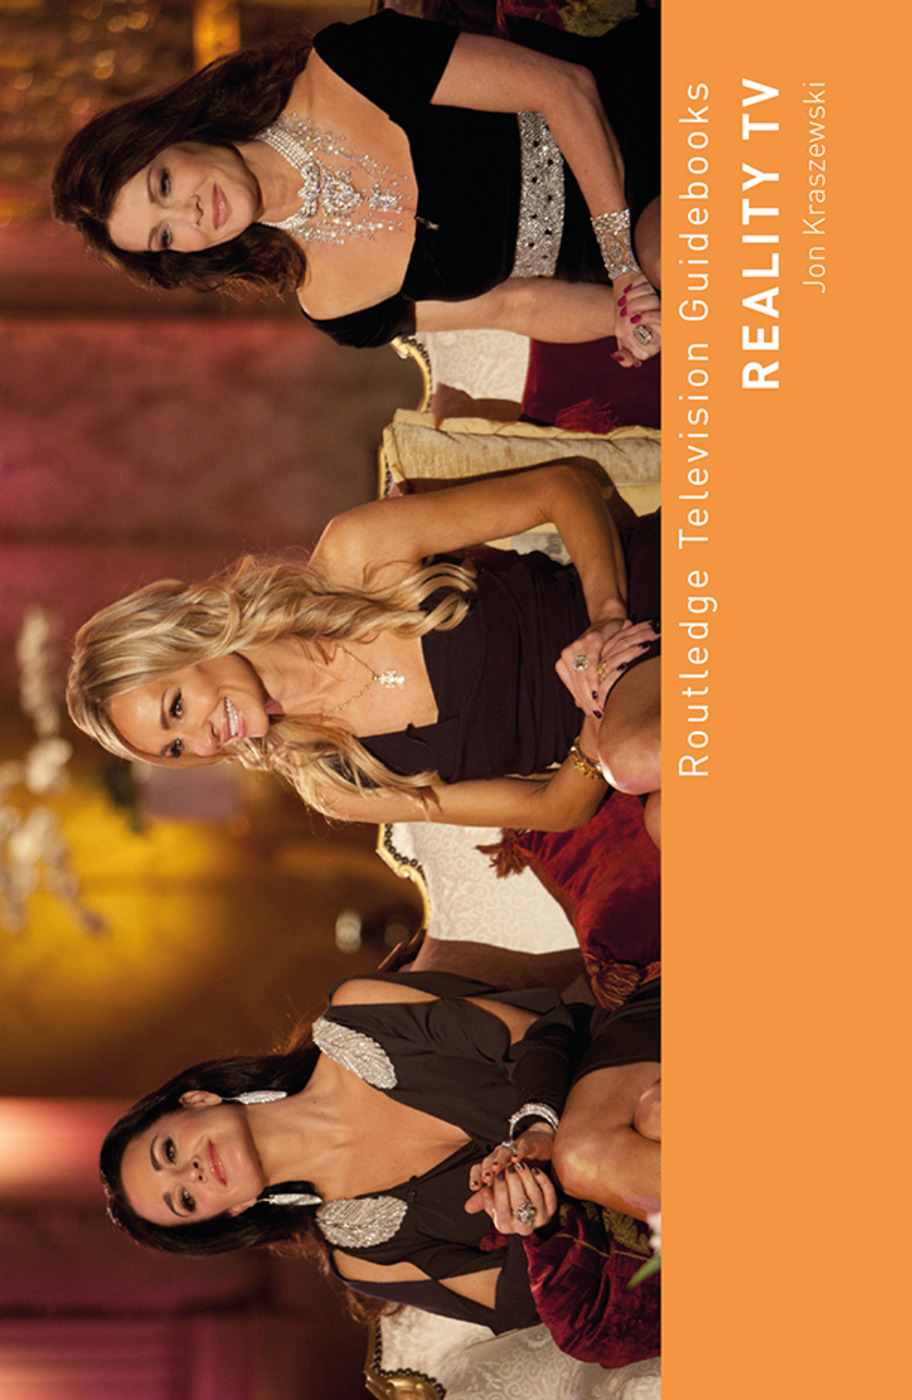 Reality TV book cover